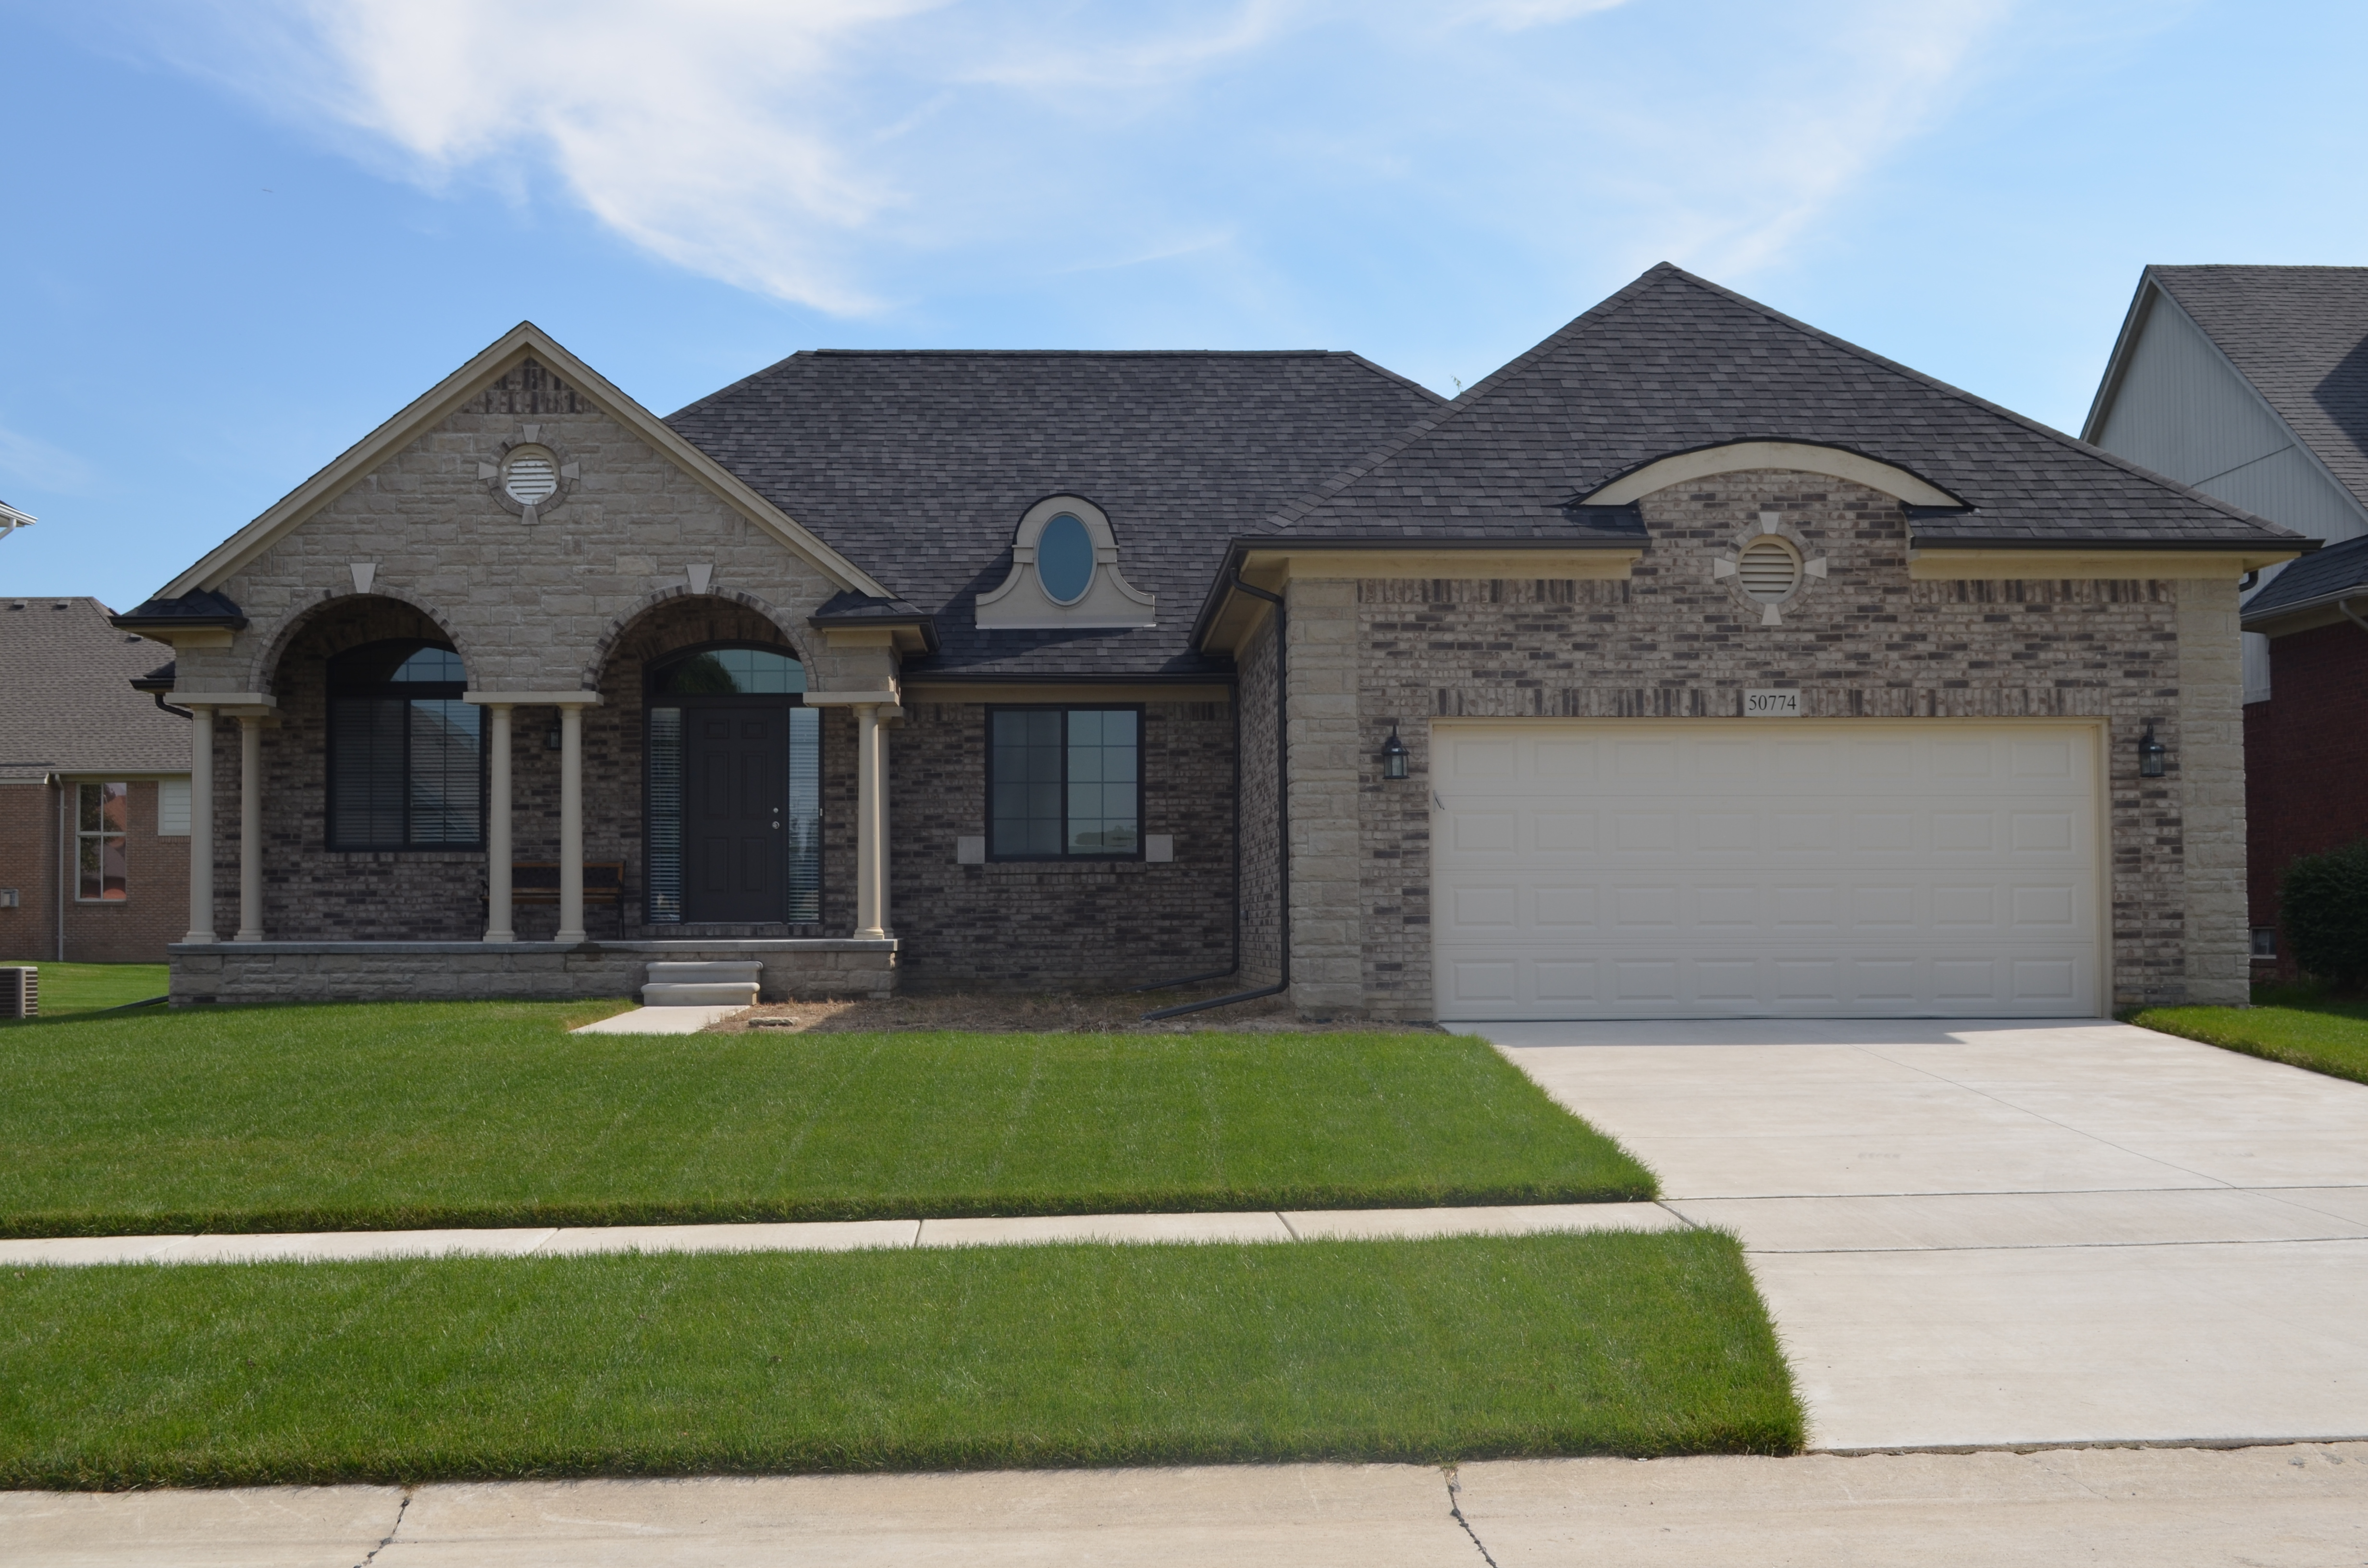 New Homes For Sale, Chestnut R. ele